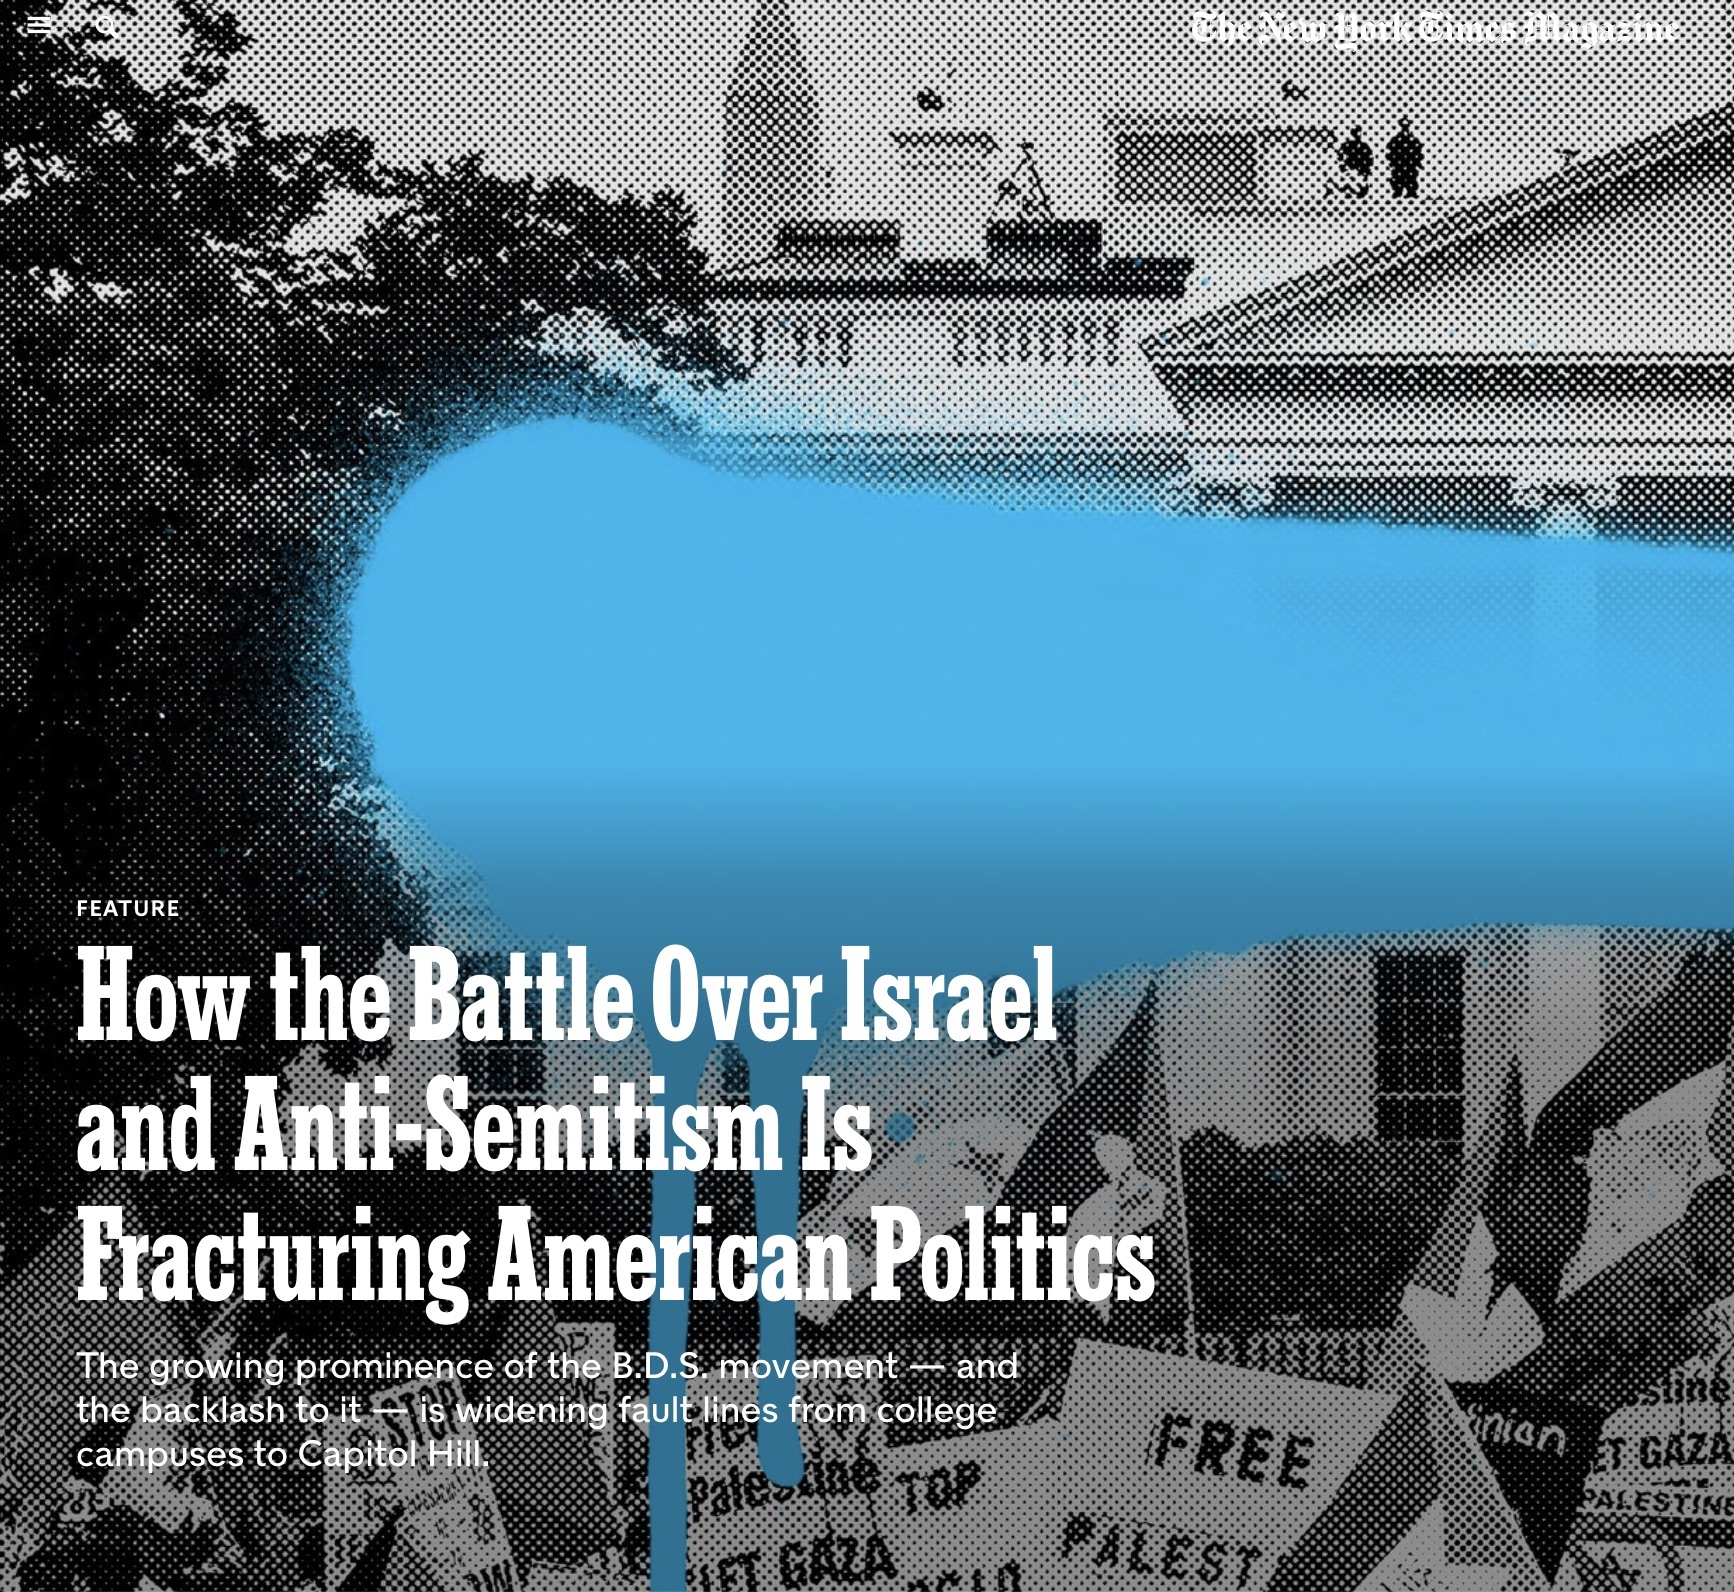 NYT Magazine: How the Battle Over Israel is Fracturing US Politics